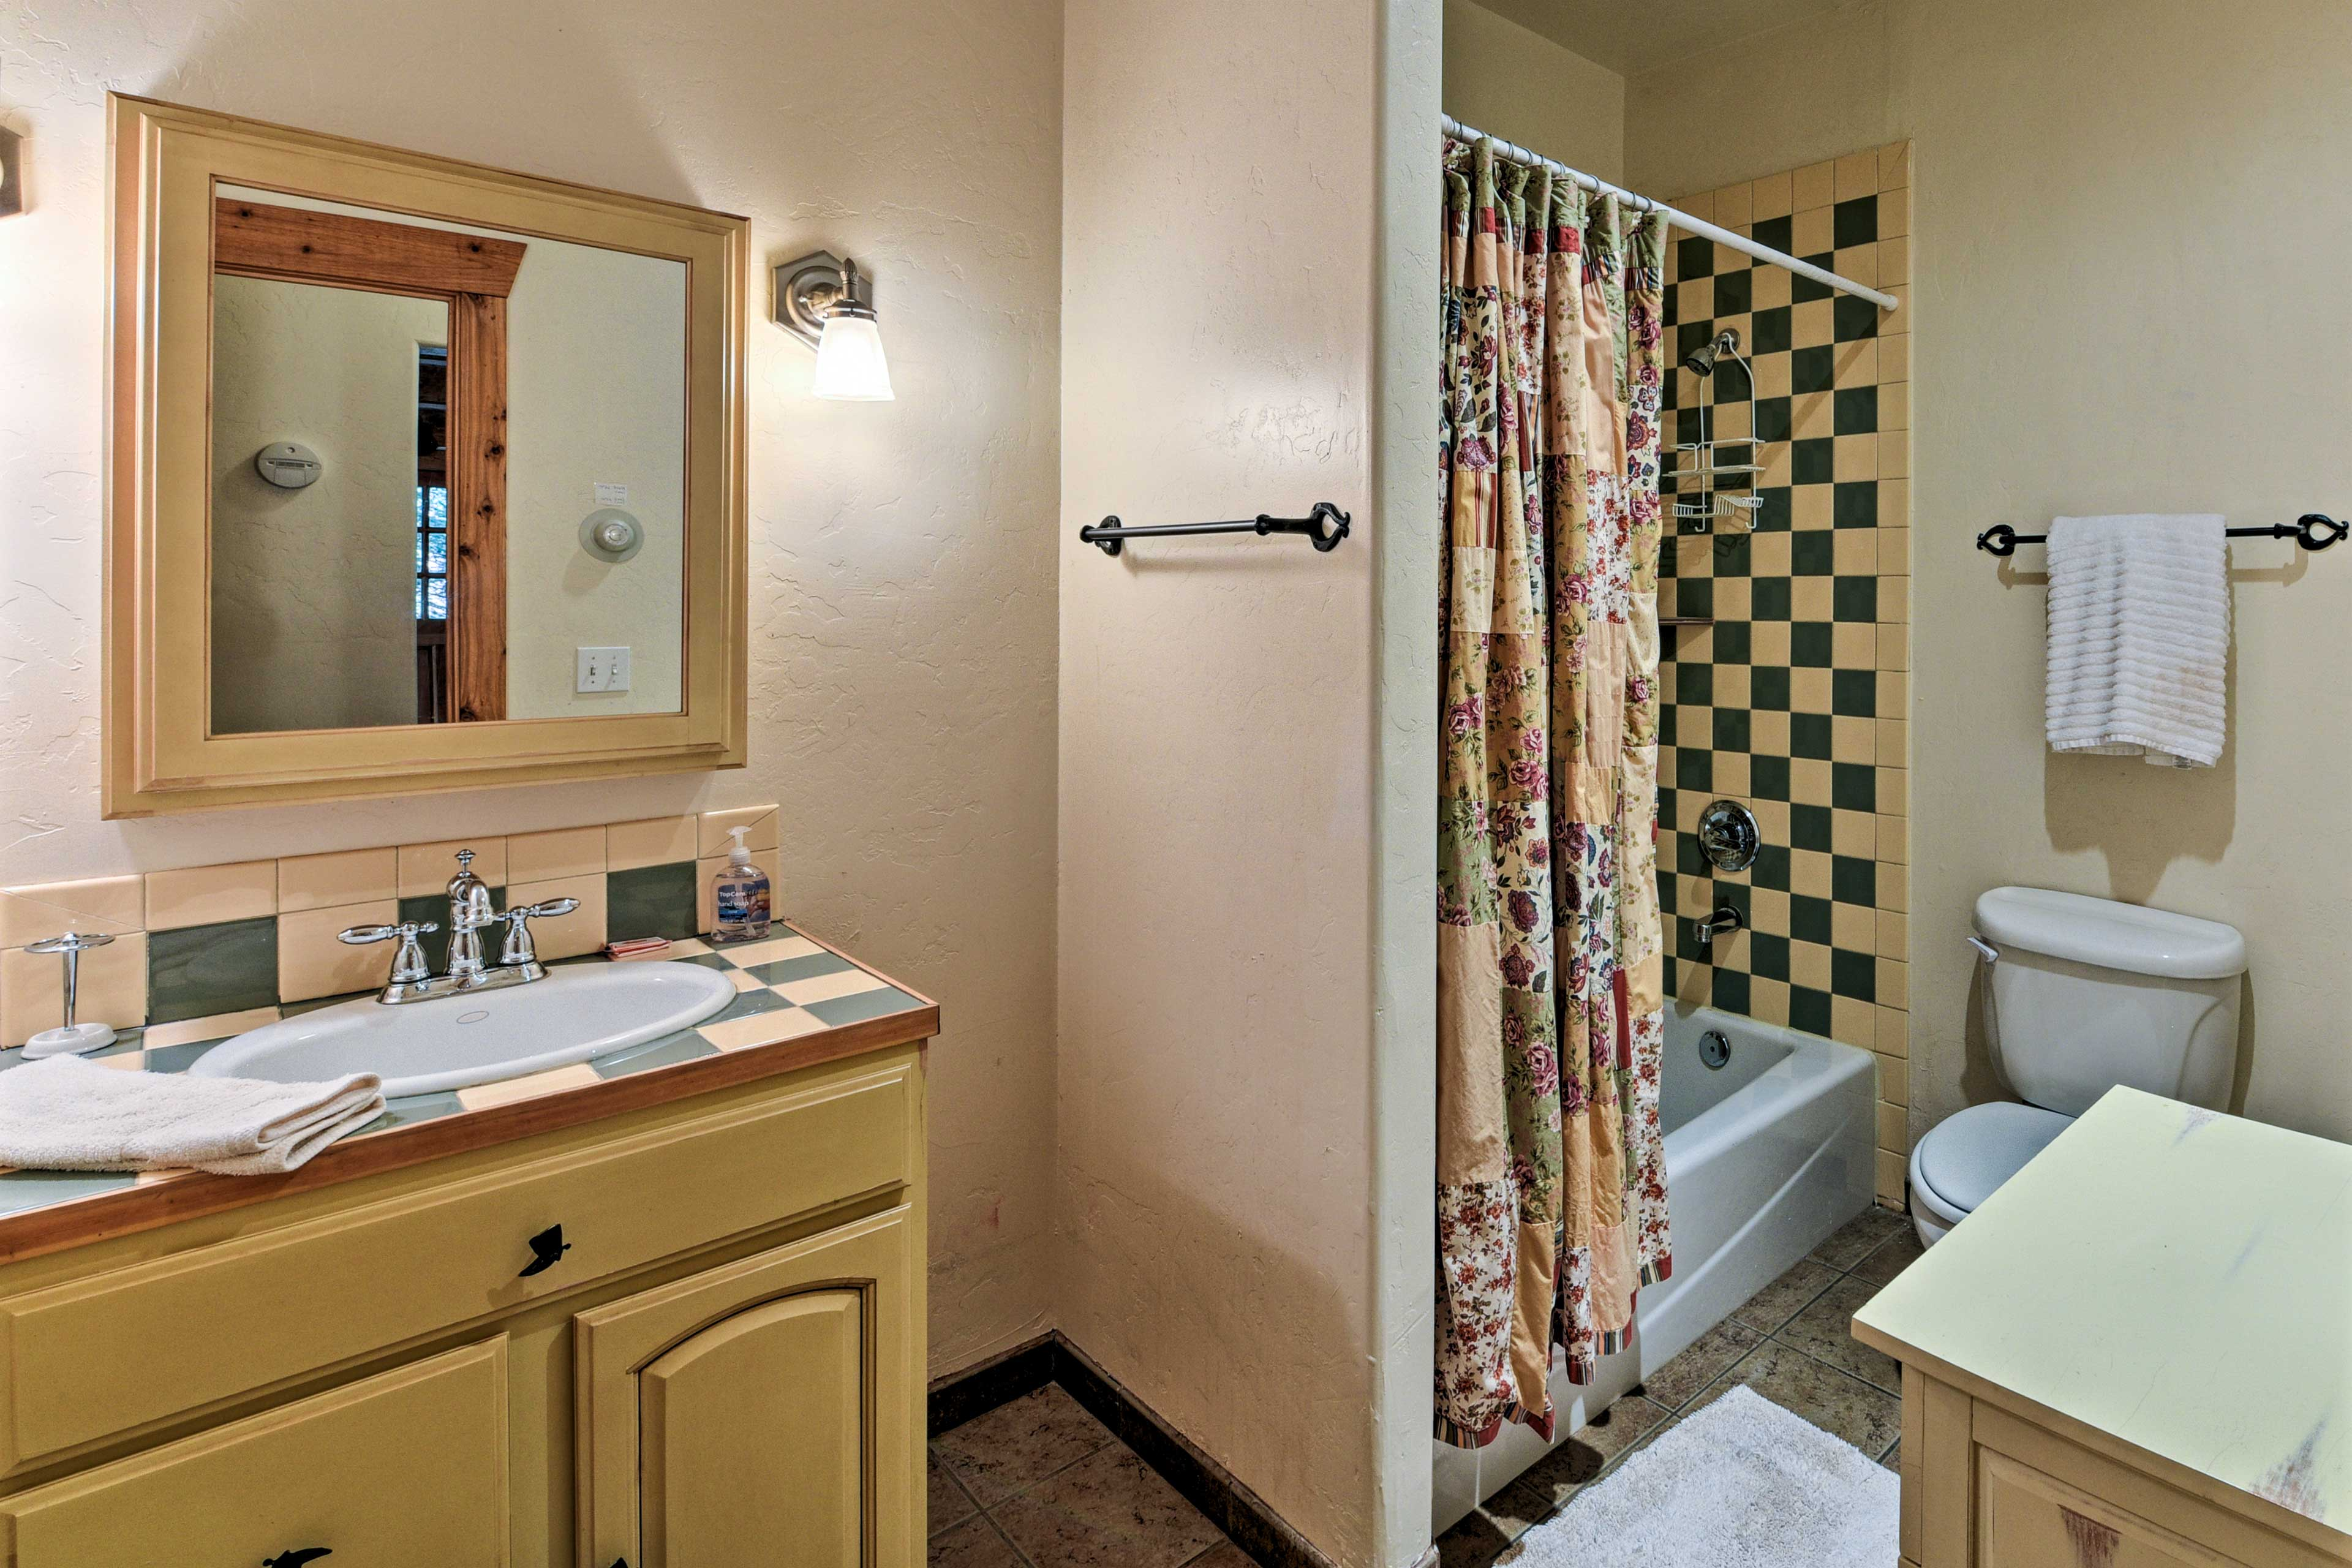 The main floor features a full bathroom with a shower/tub combo.